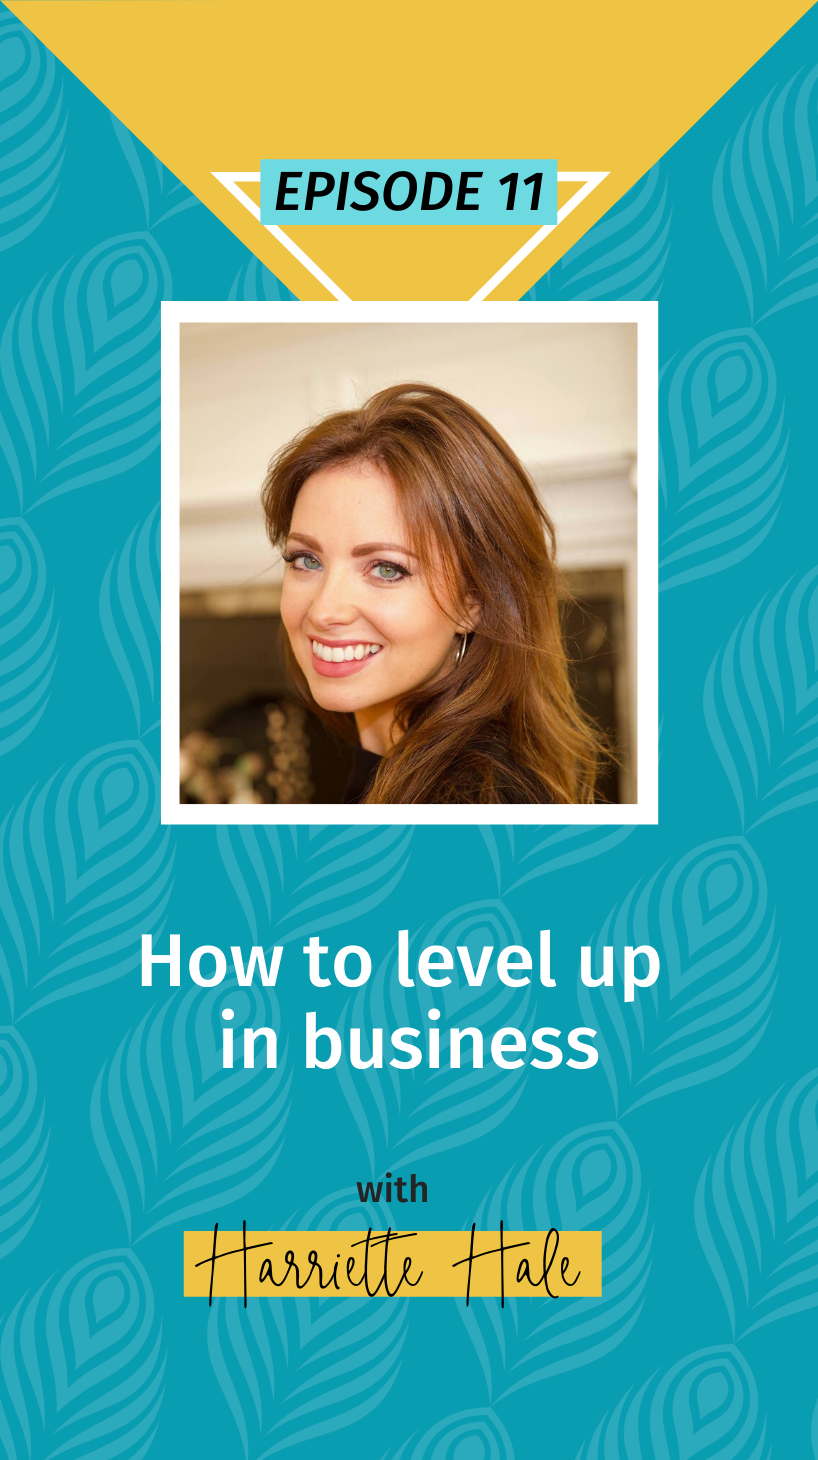 011 Making Babies + Making Bank: How to level up in business, with Harriette Hale